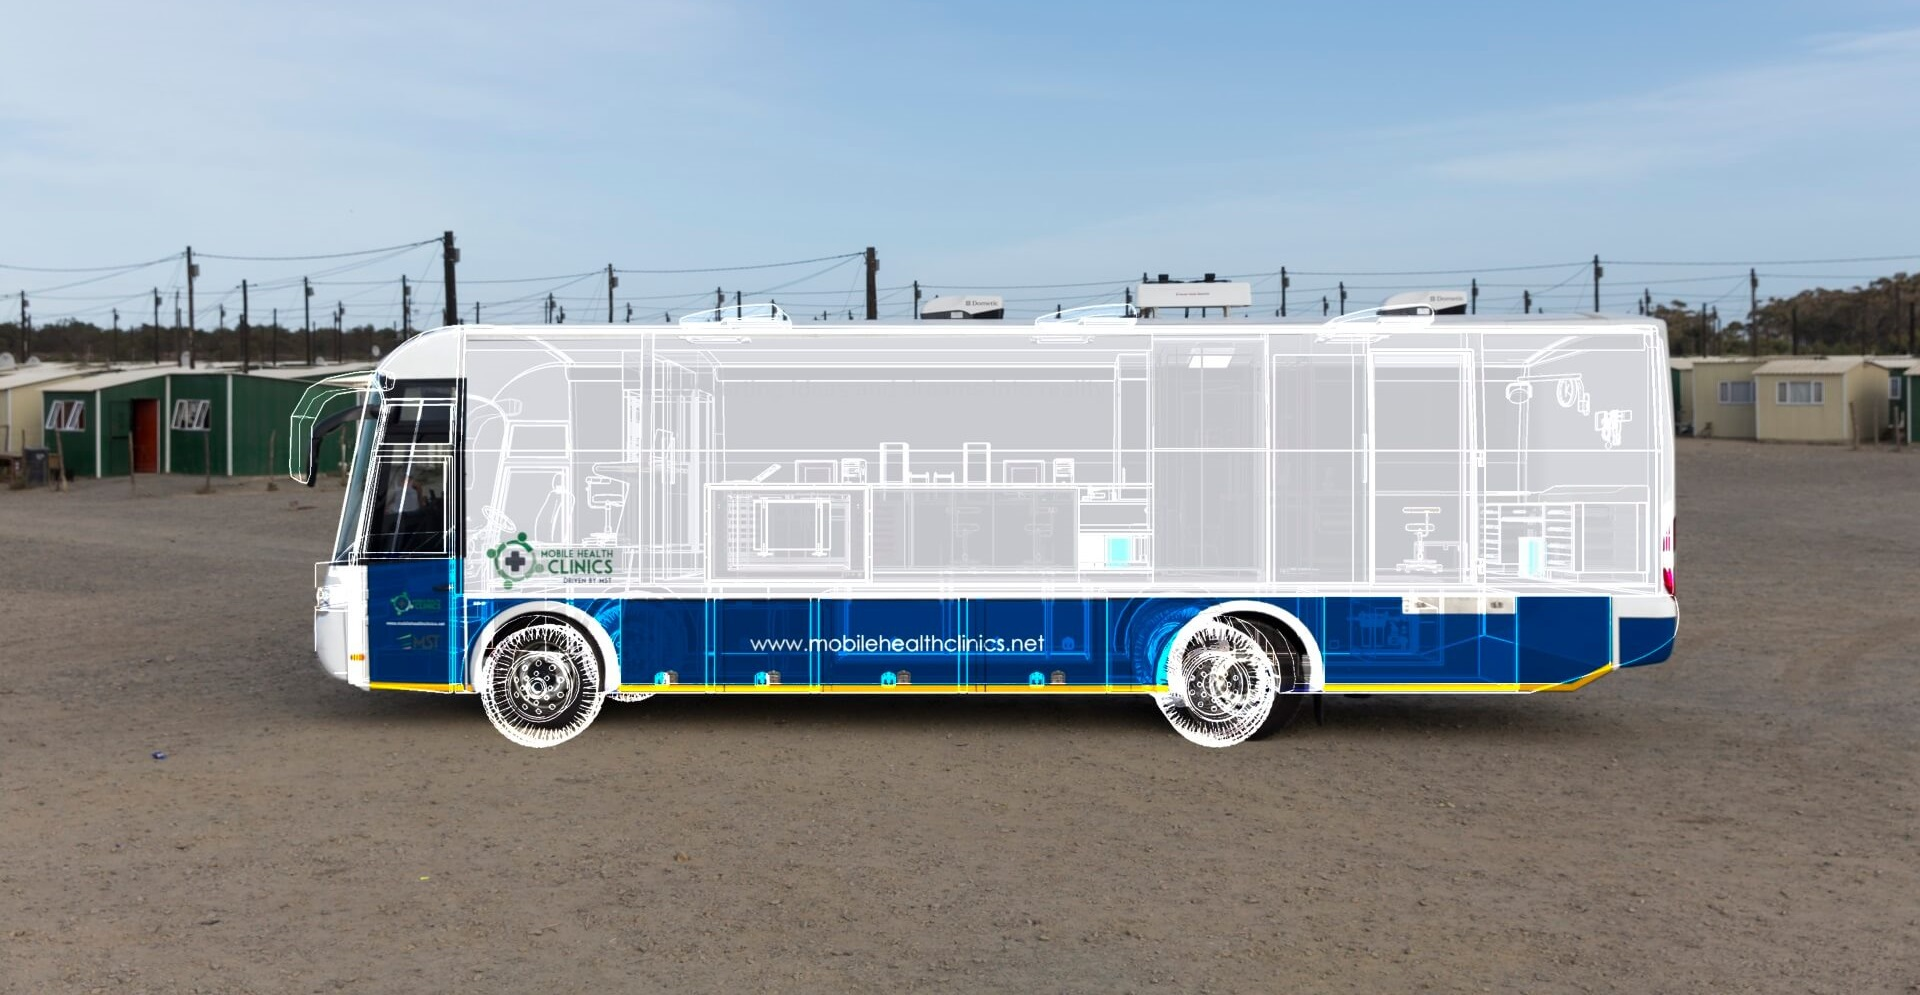 Mobile Health Clinics bus